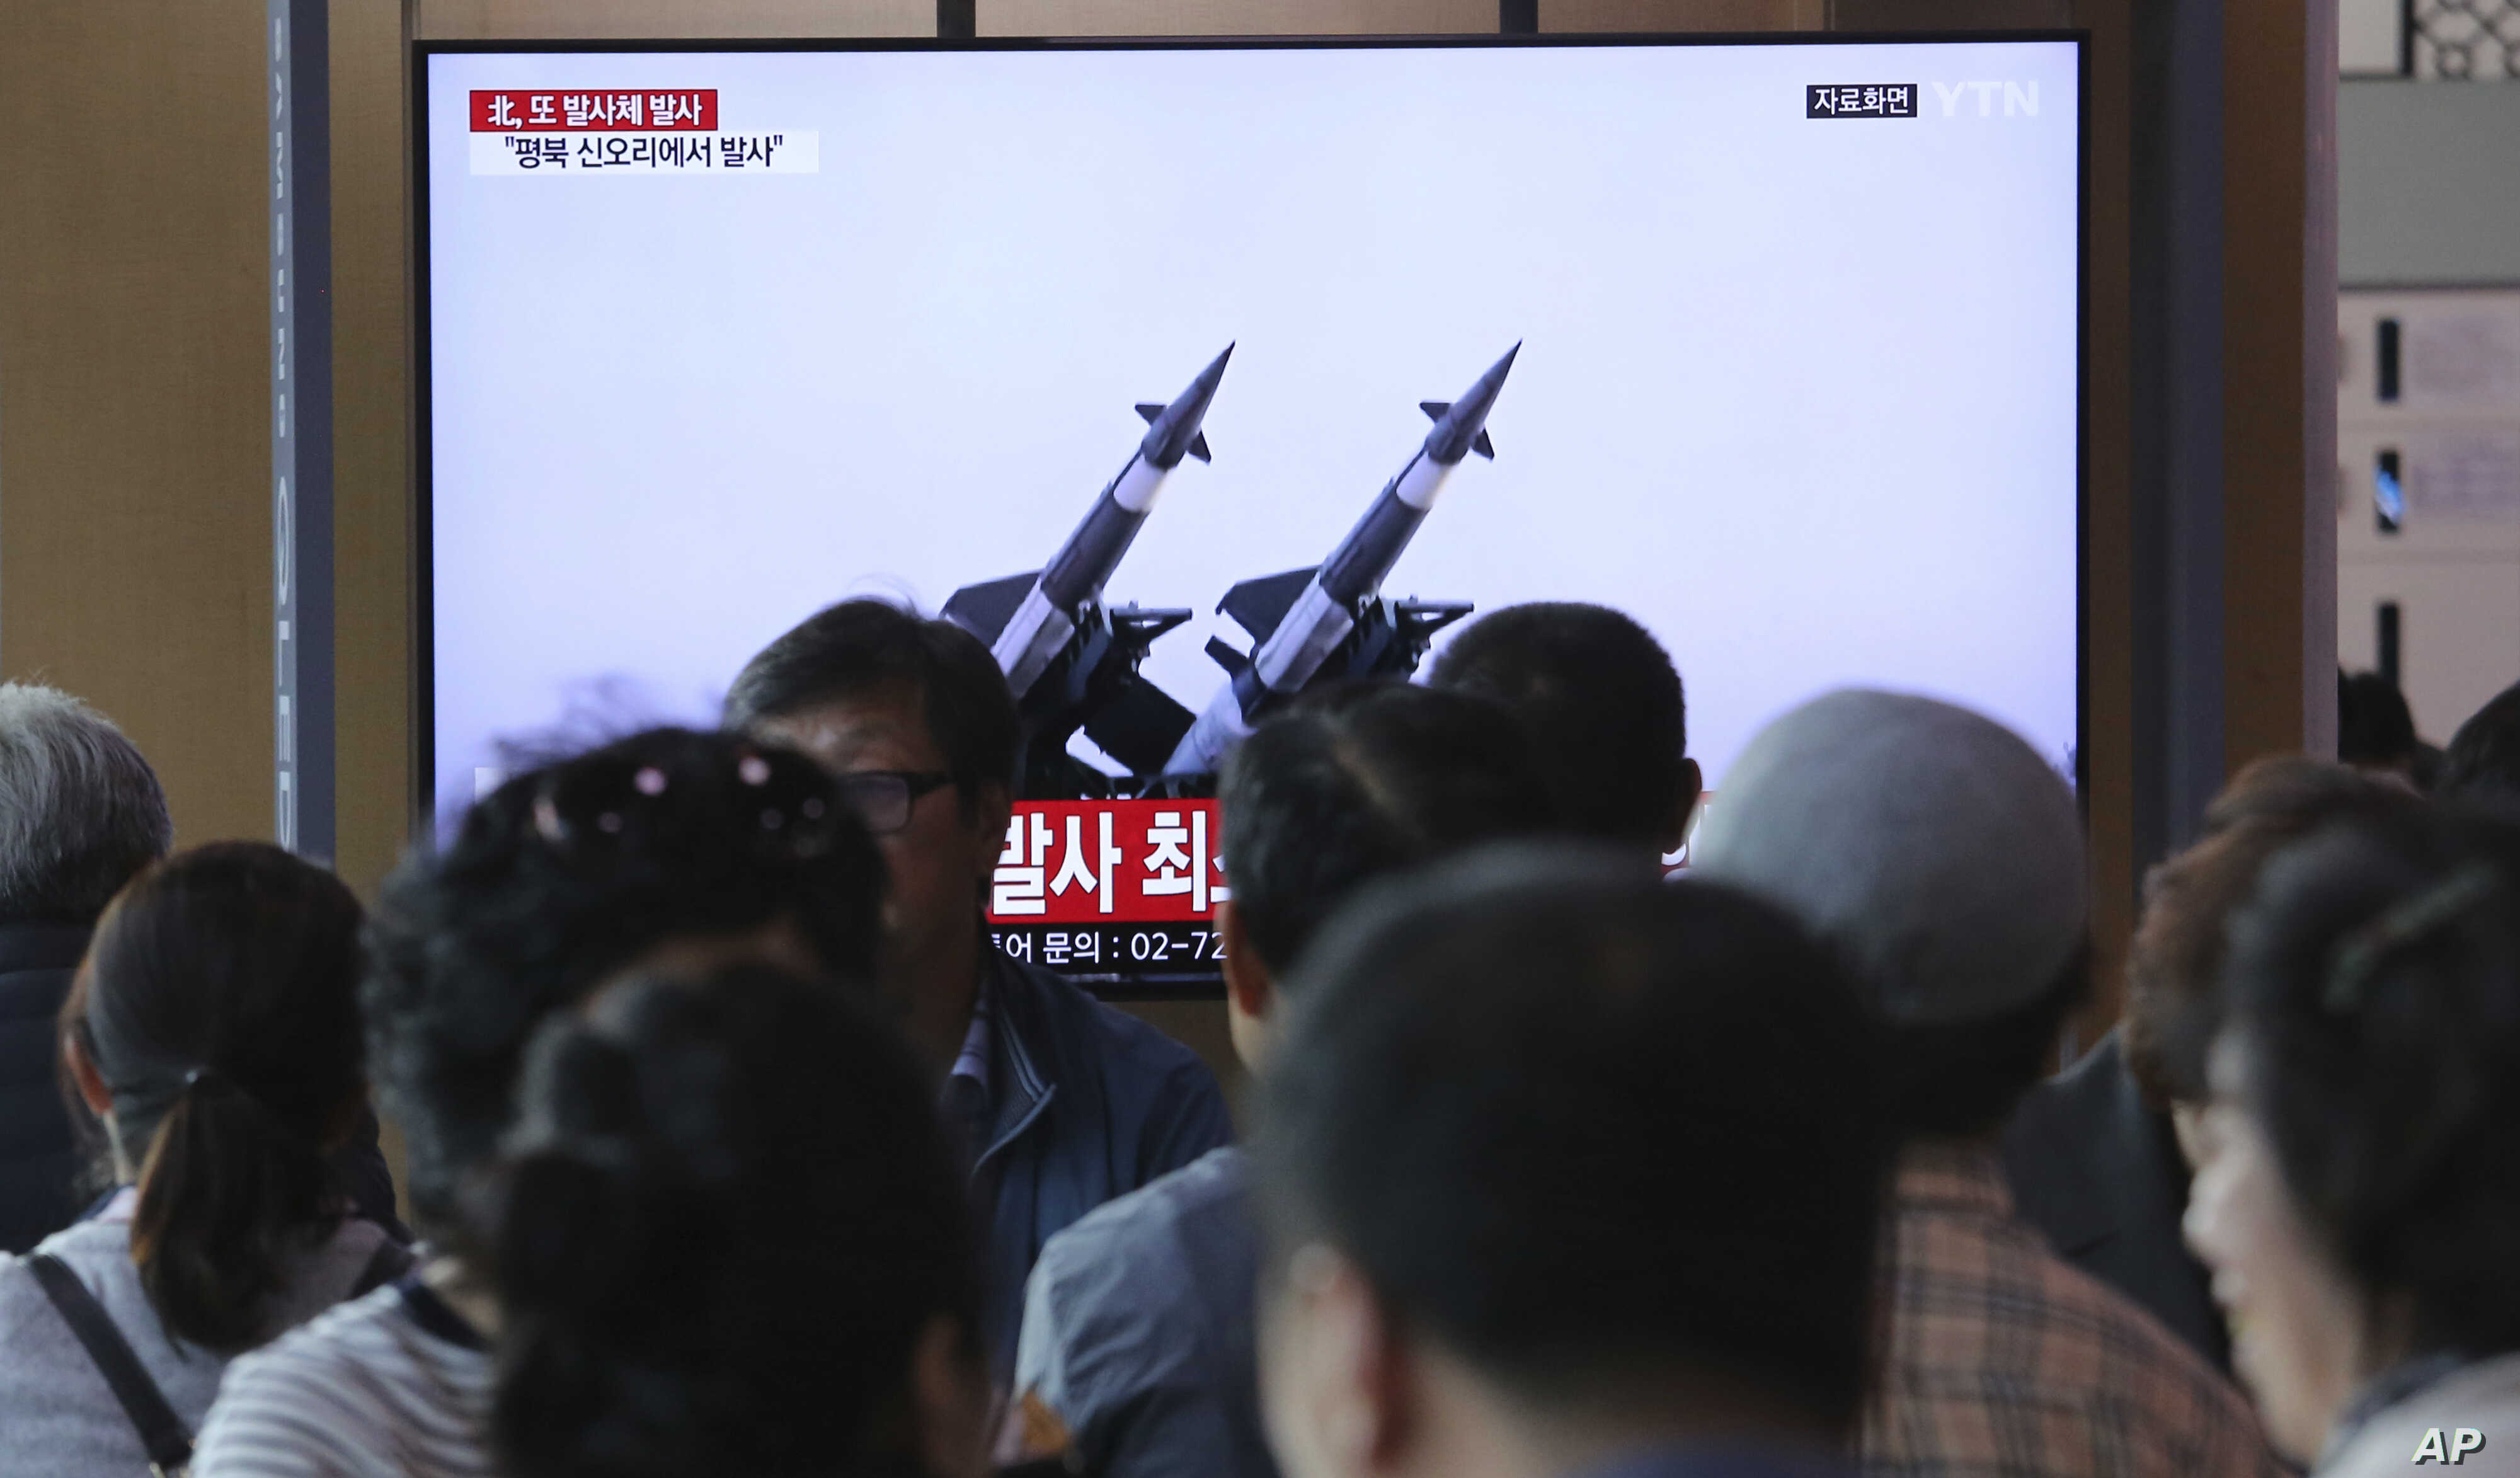 North Korea Fires 2 Ballistic Missiles, in Apparent